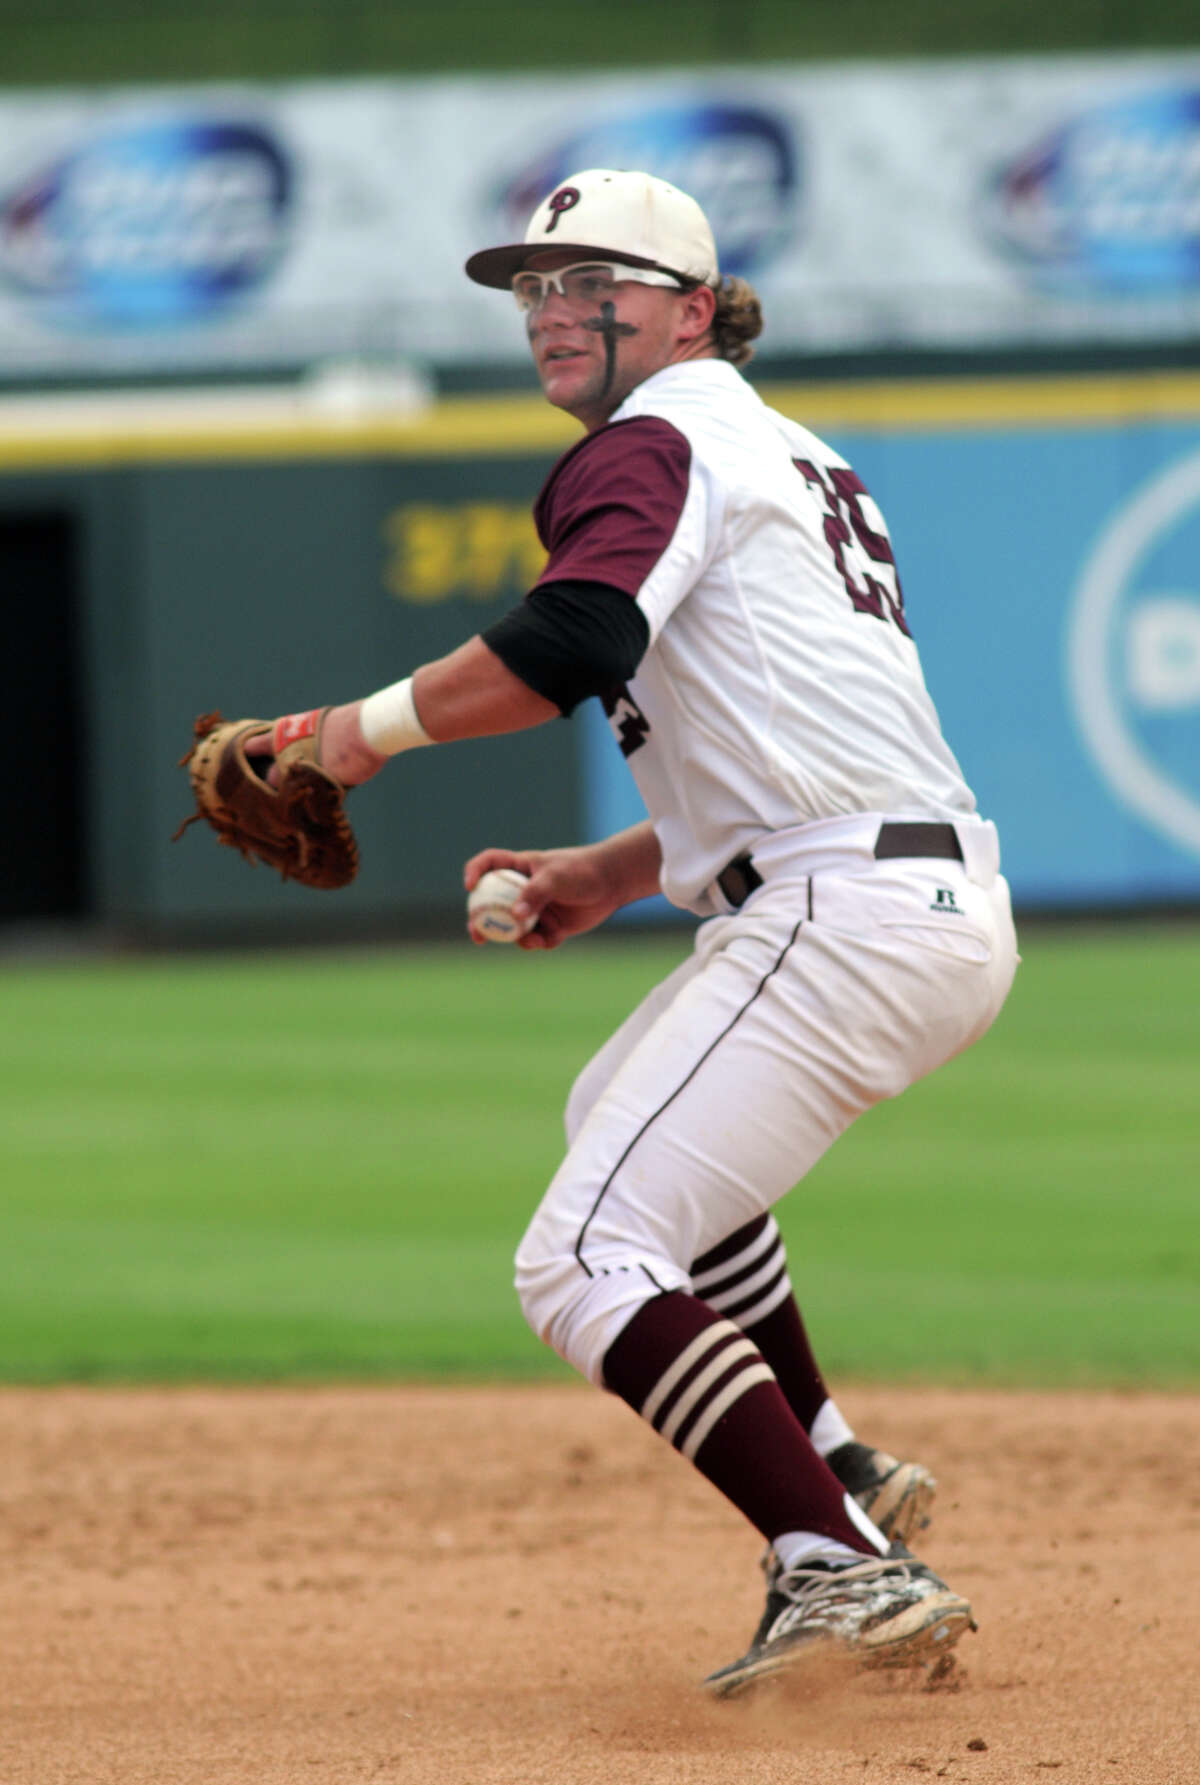 Pearland senior first baseman makes a play in the top of the 4th inning against Lewisville Flower Mound in their Class 5A UIL Baseball State Championships matchup at Dell Diamond in Round Rock on Friday.